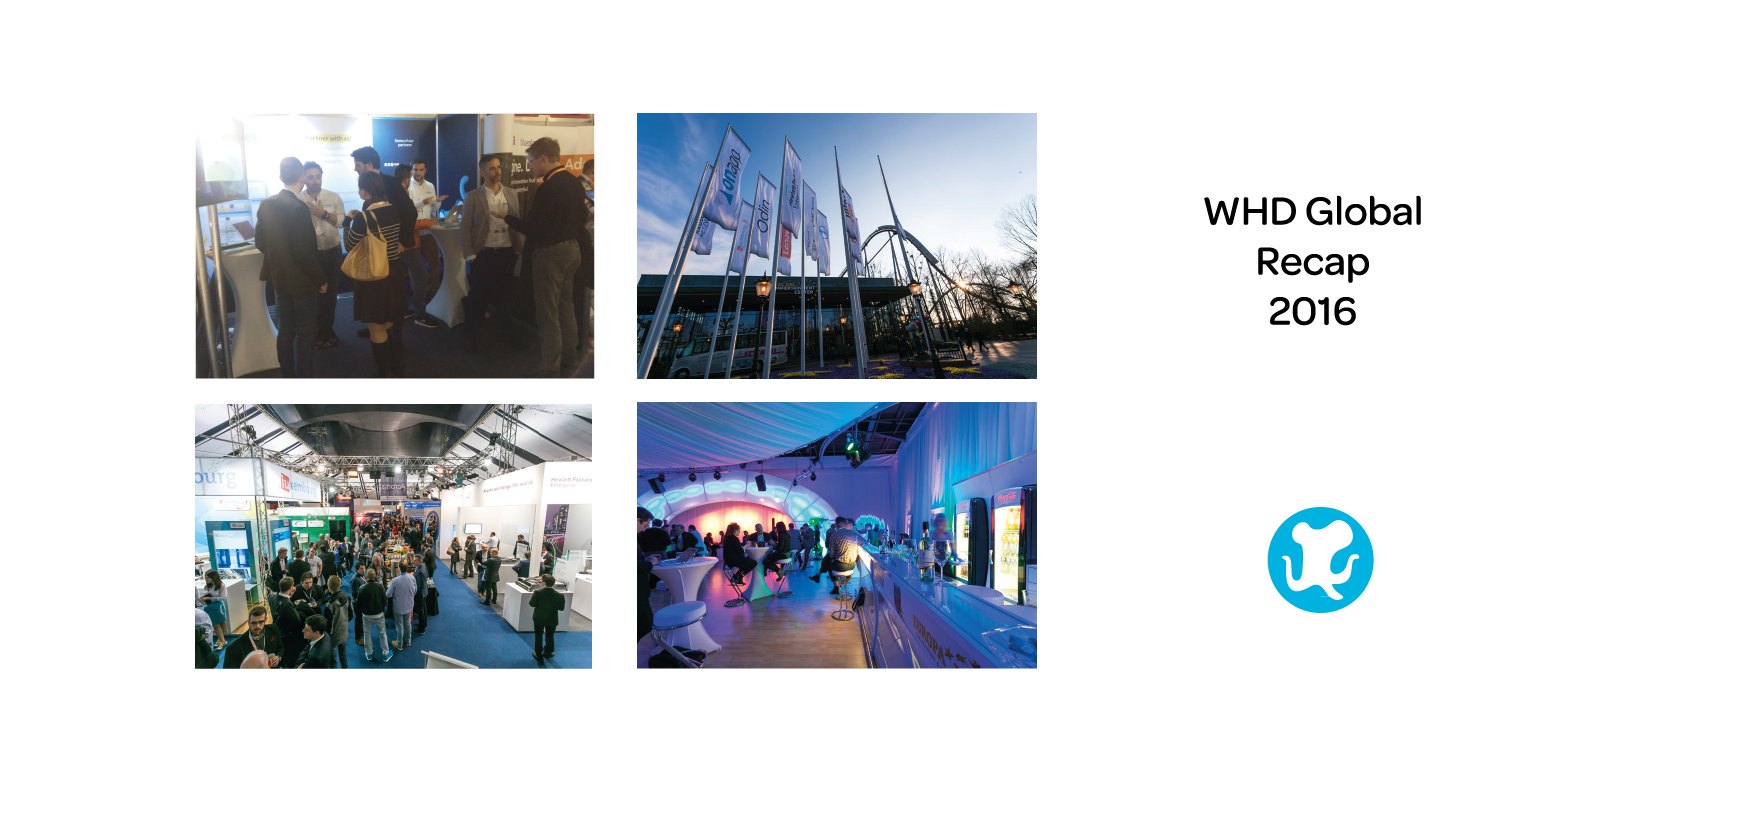 Our WHD Recap